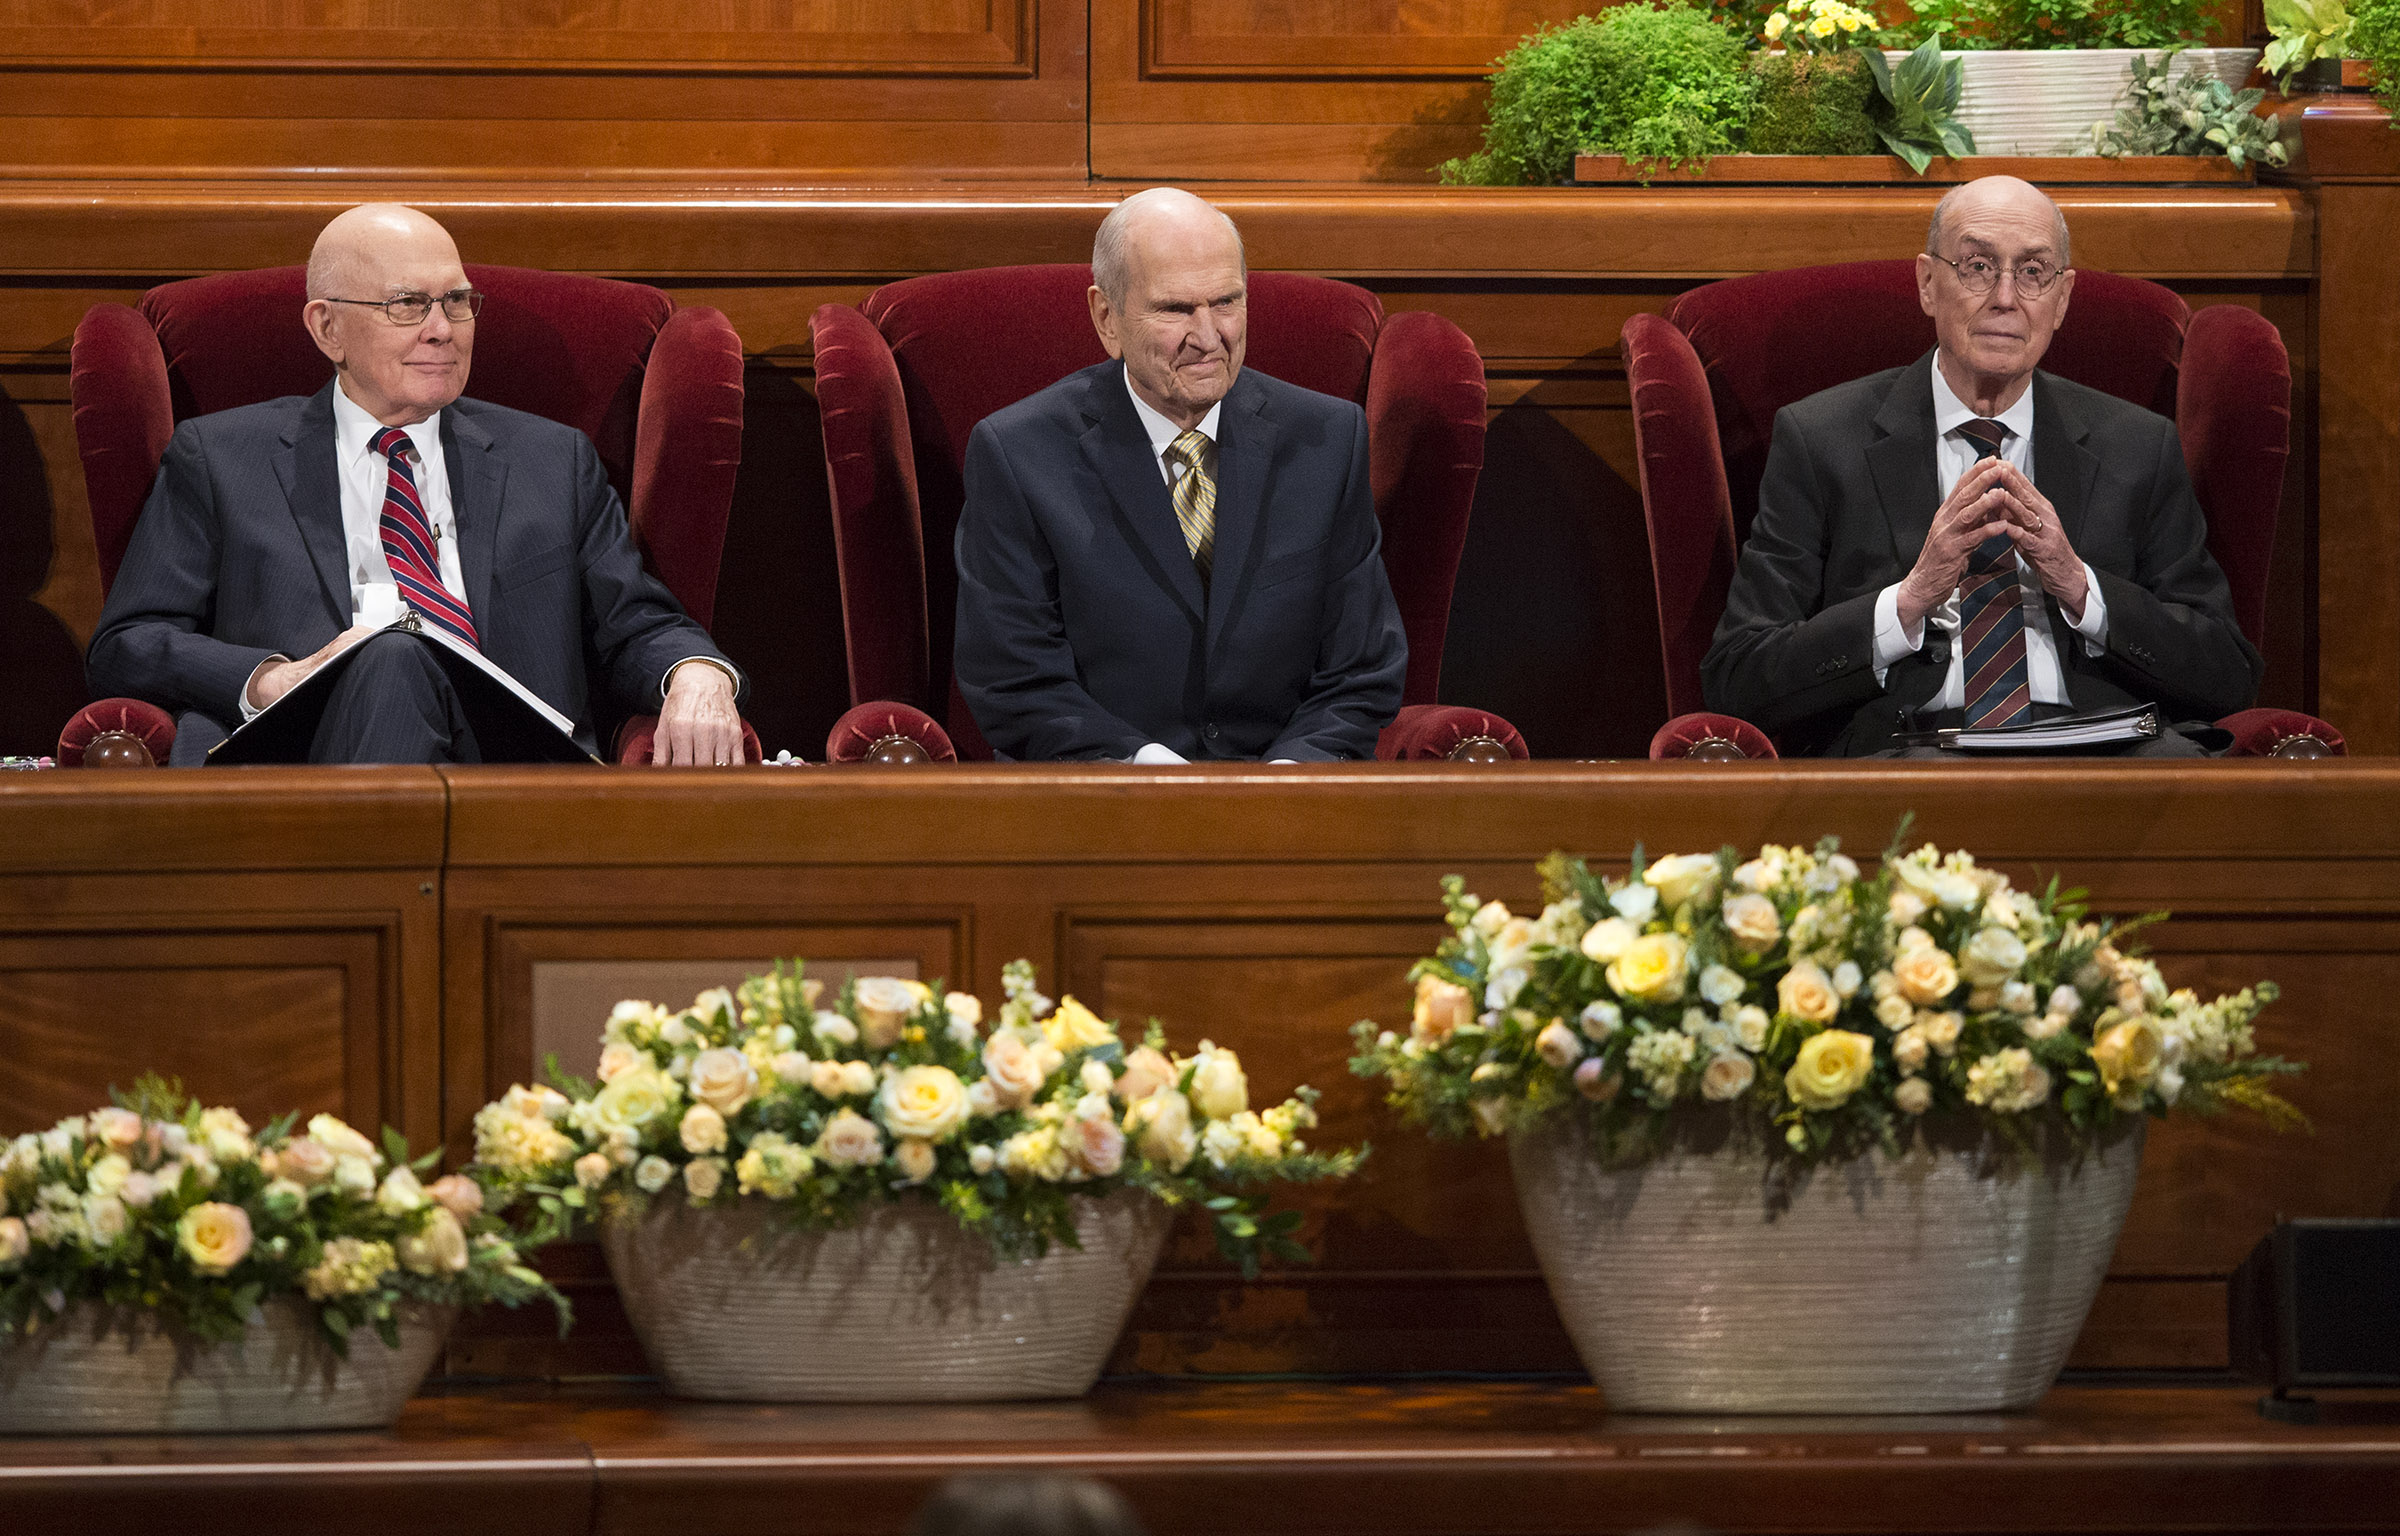 LDS Church President Russell M. Nelson sits with his counselors, President Dallin H. Oaks, first counselor in the First Presidency and President Henry B. Eyring, second counselor in the First Presidency, prior to the Sunday afternoon session of the 188th Annual General Conference of The Church of Jesus Christ of Latter-day Saints, in the Conference Center in Salt Lake City on Sunday, April 1, 2018.